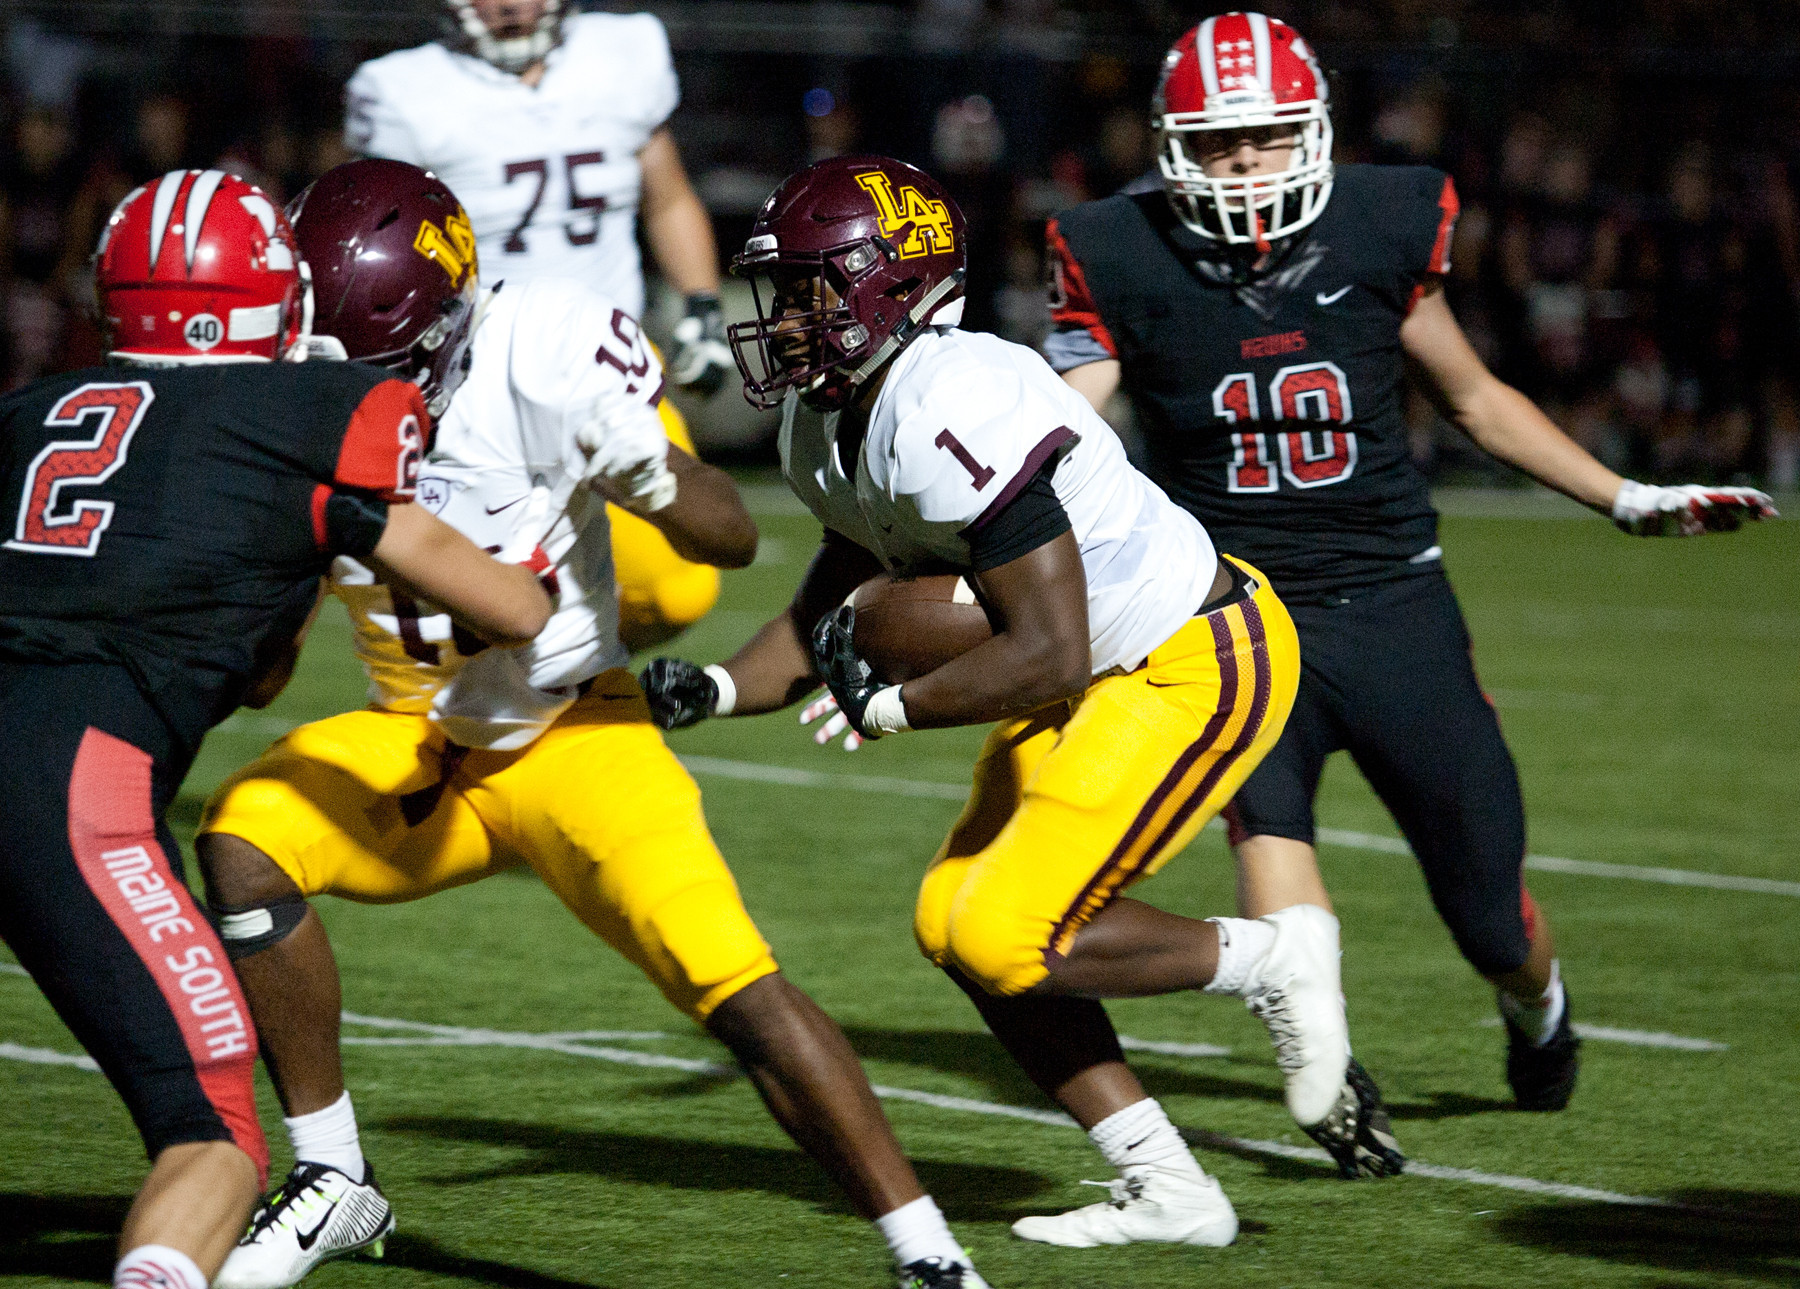 Prep football: No. 5 Loyola airs it out, routs No. 17 ...